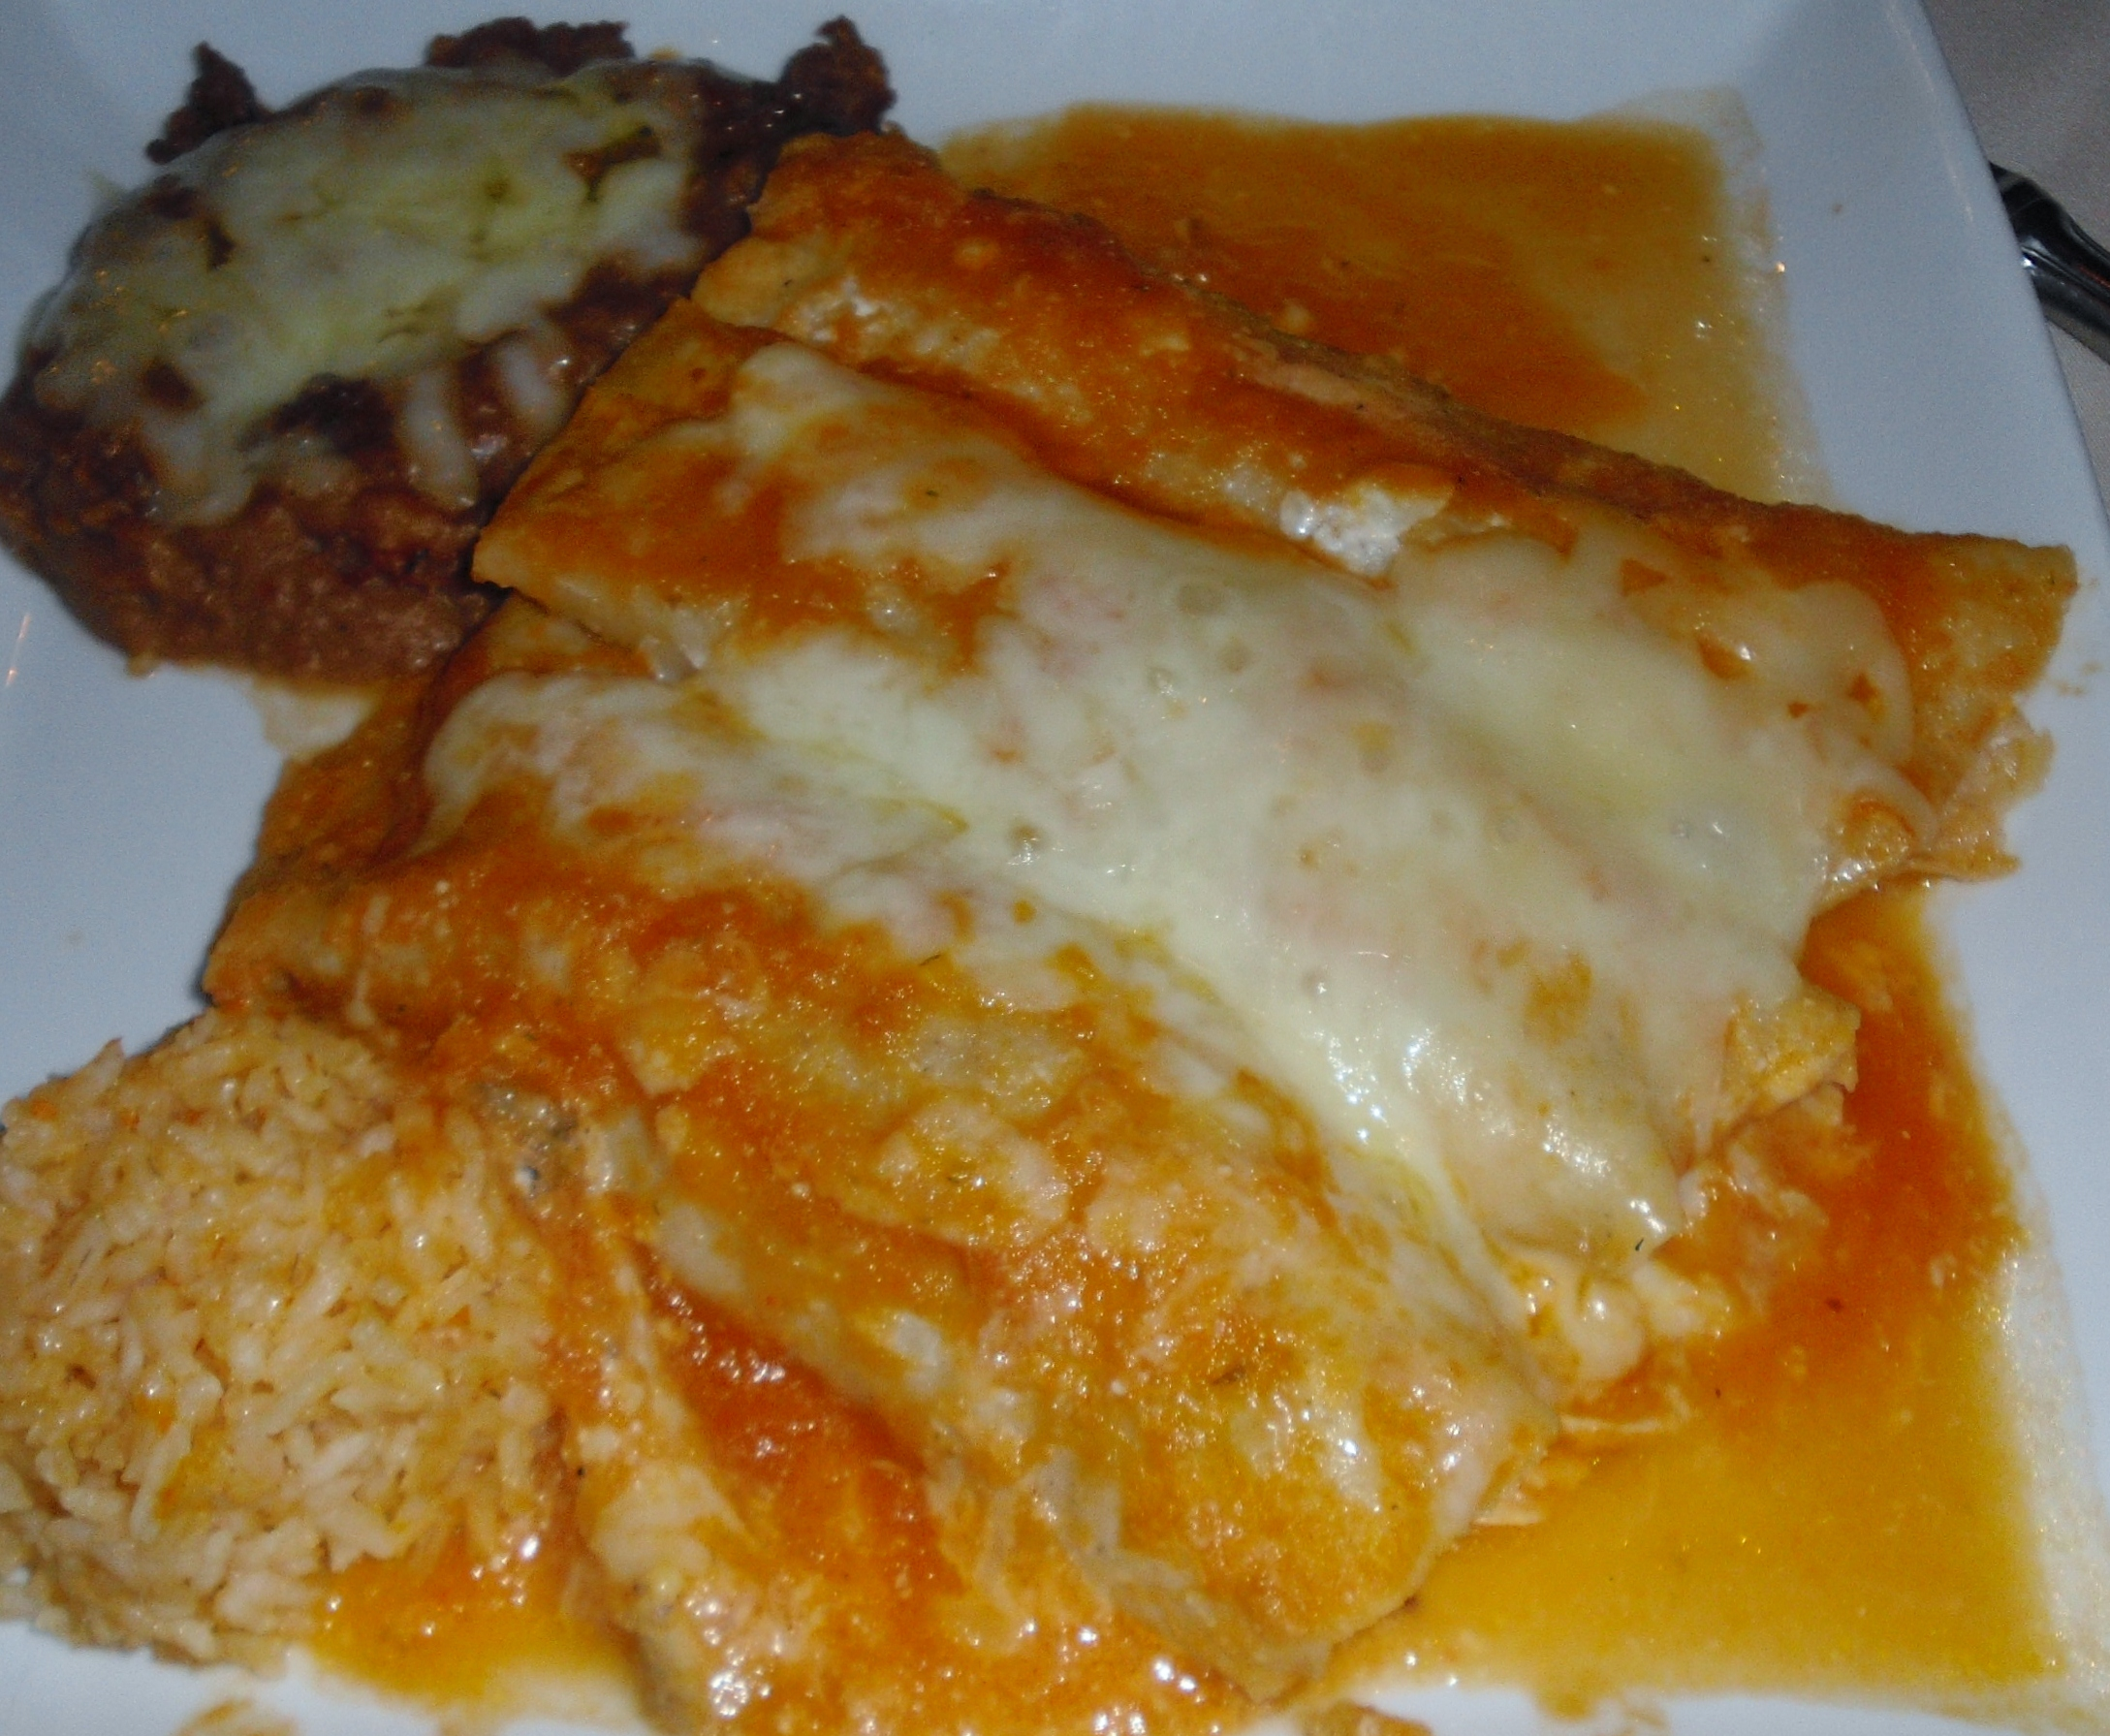 Recipes Course Main Dish Campbell's Easy Chicken and Cheese Enchiladas